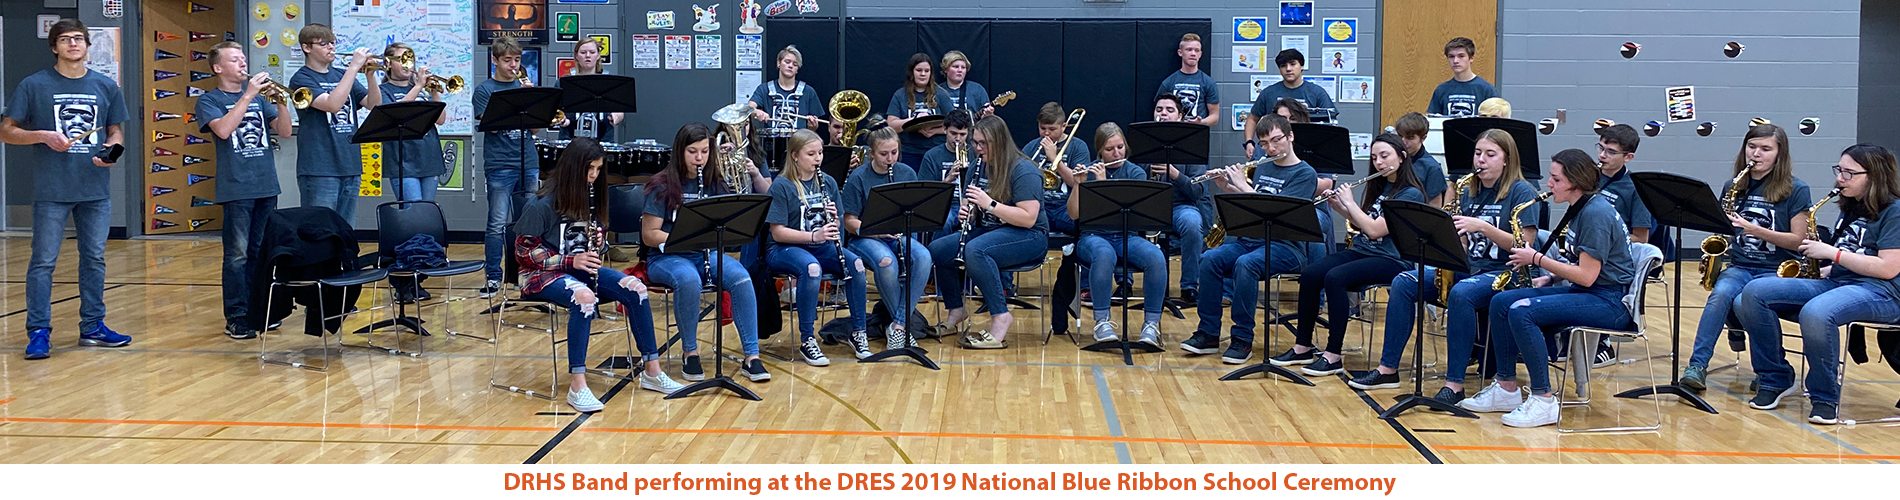 DRHS Band performing at the DRES 2019 National Blue Ribbon School Ceremony